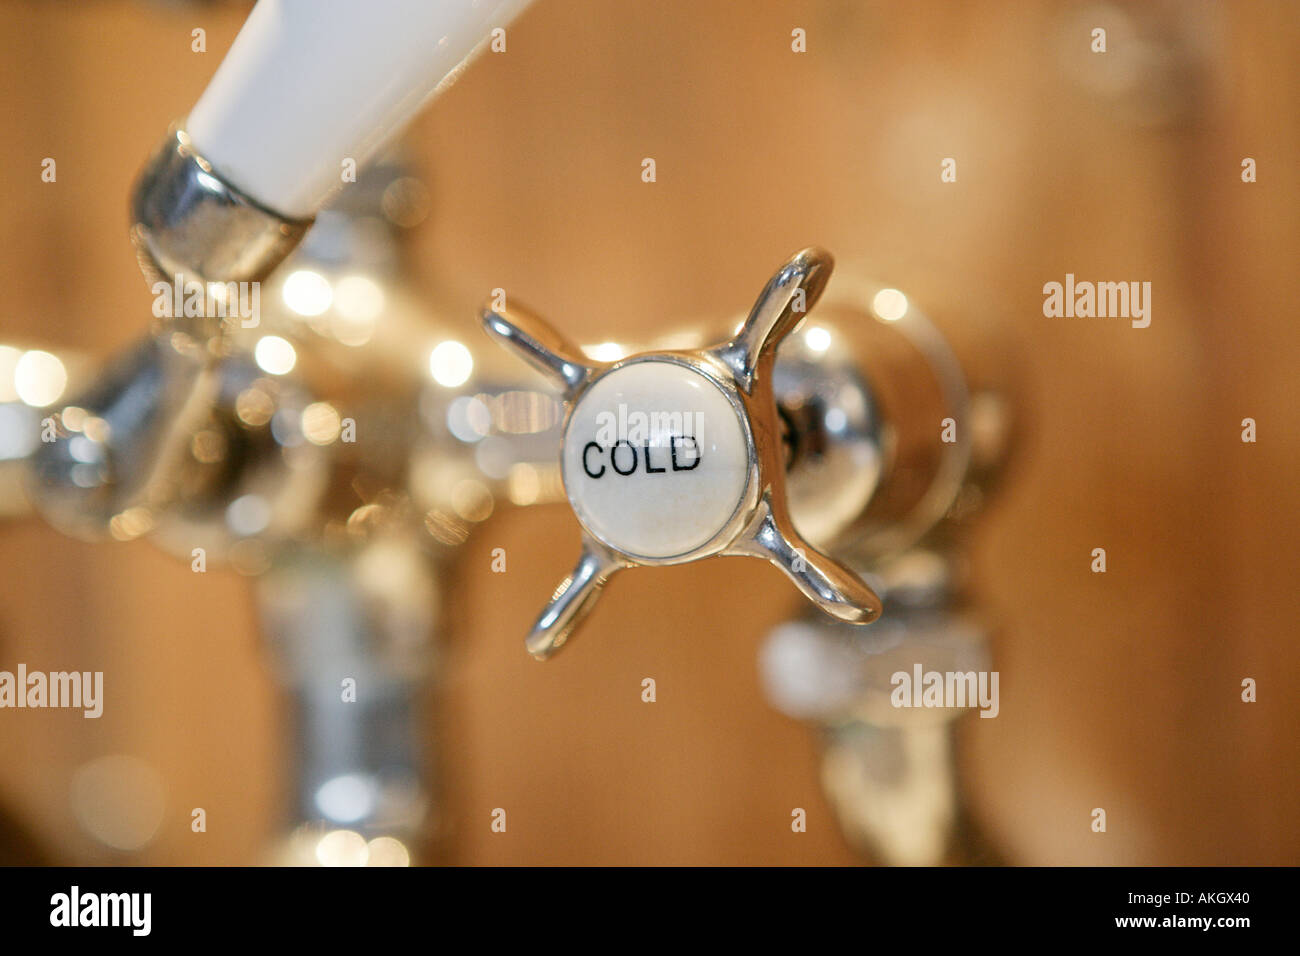 Cold water tap - Stock Image